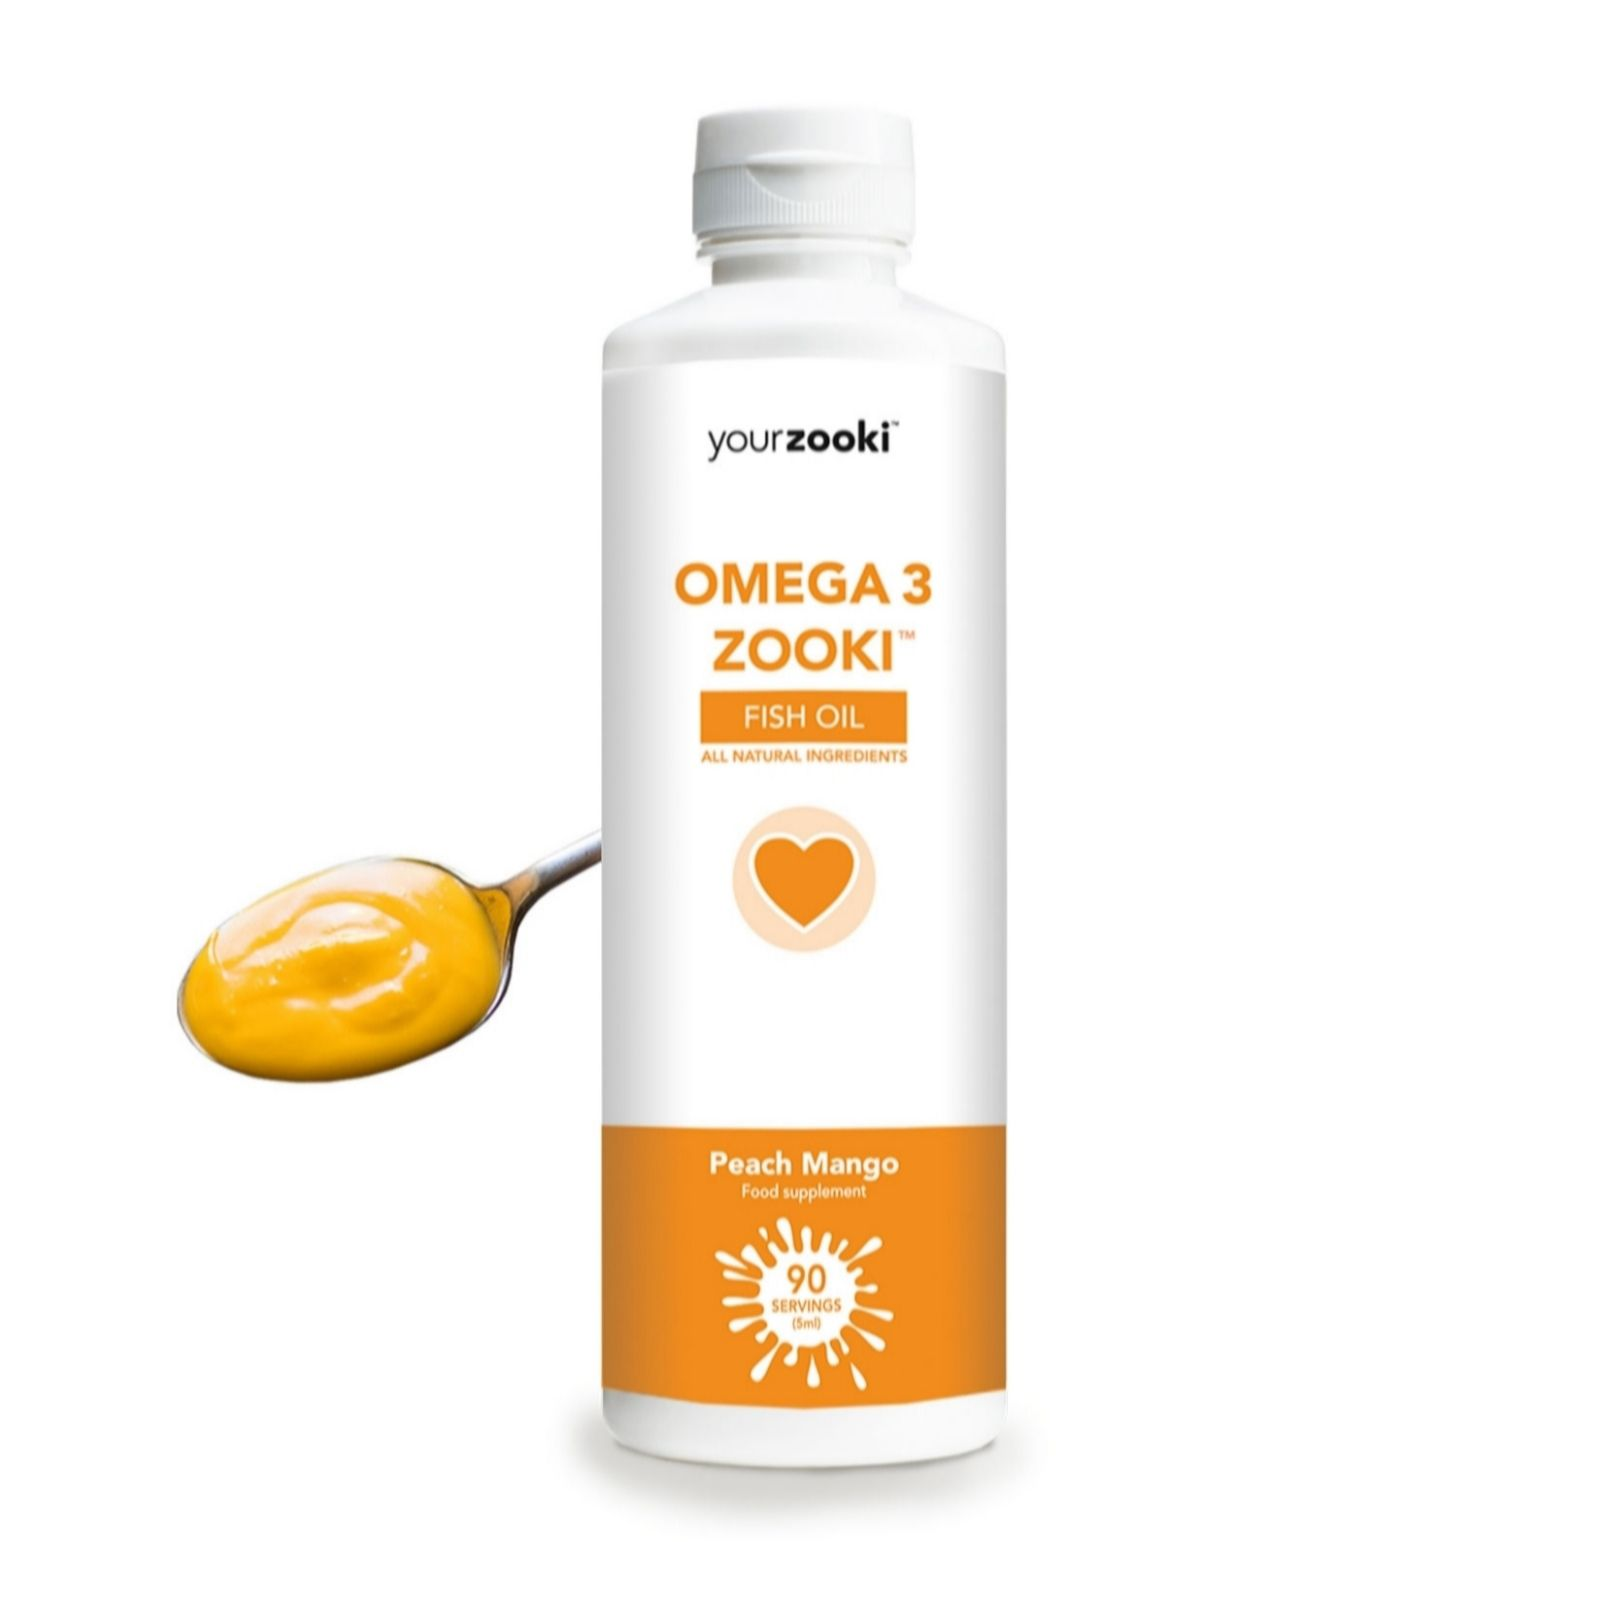 6a332e5d79 Omega 3 Zooki By YourZooki - QVC UK